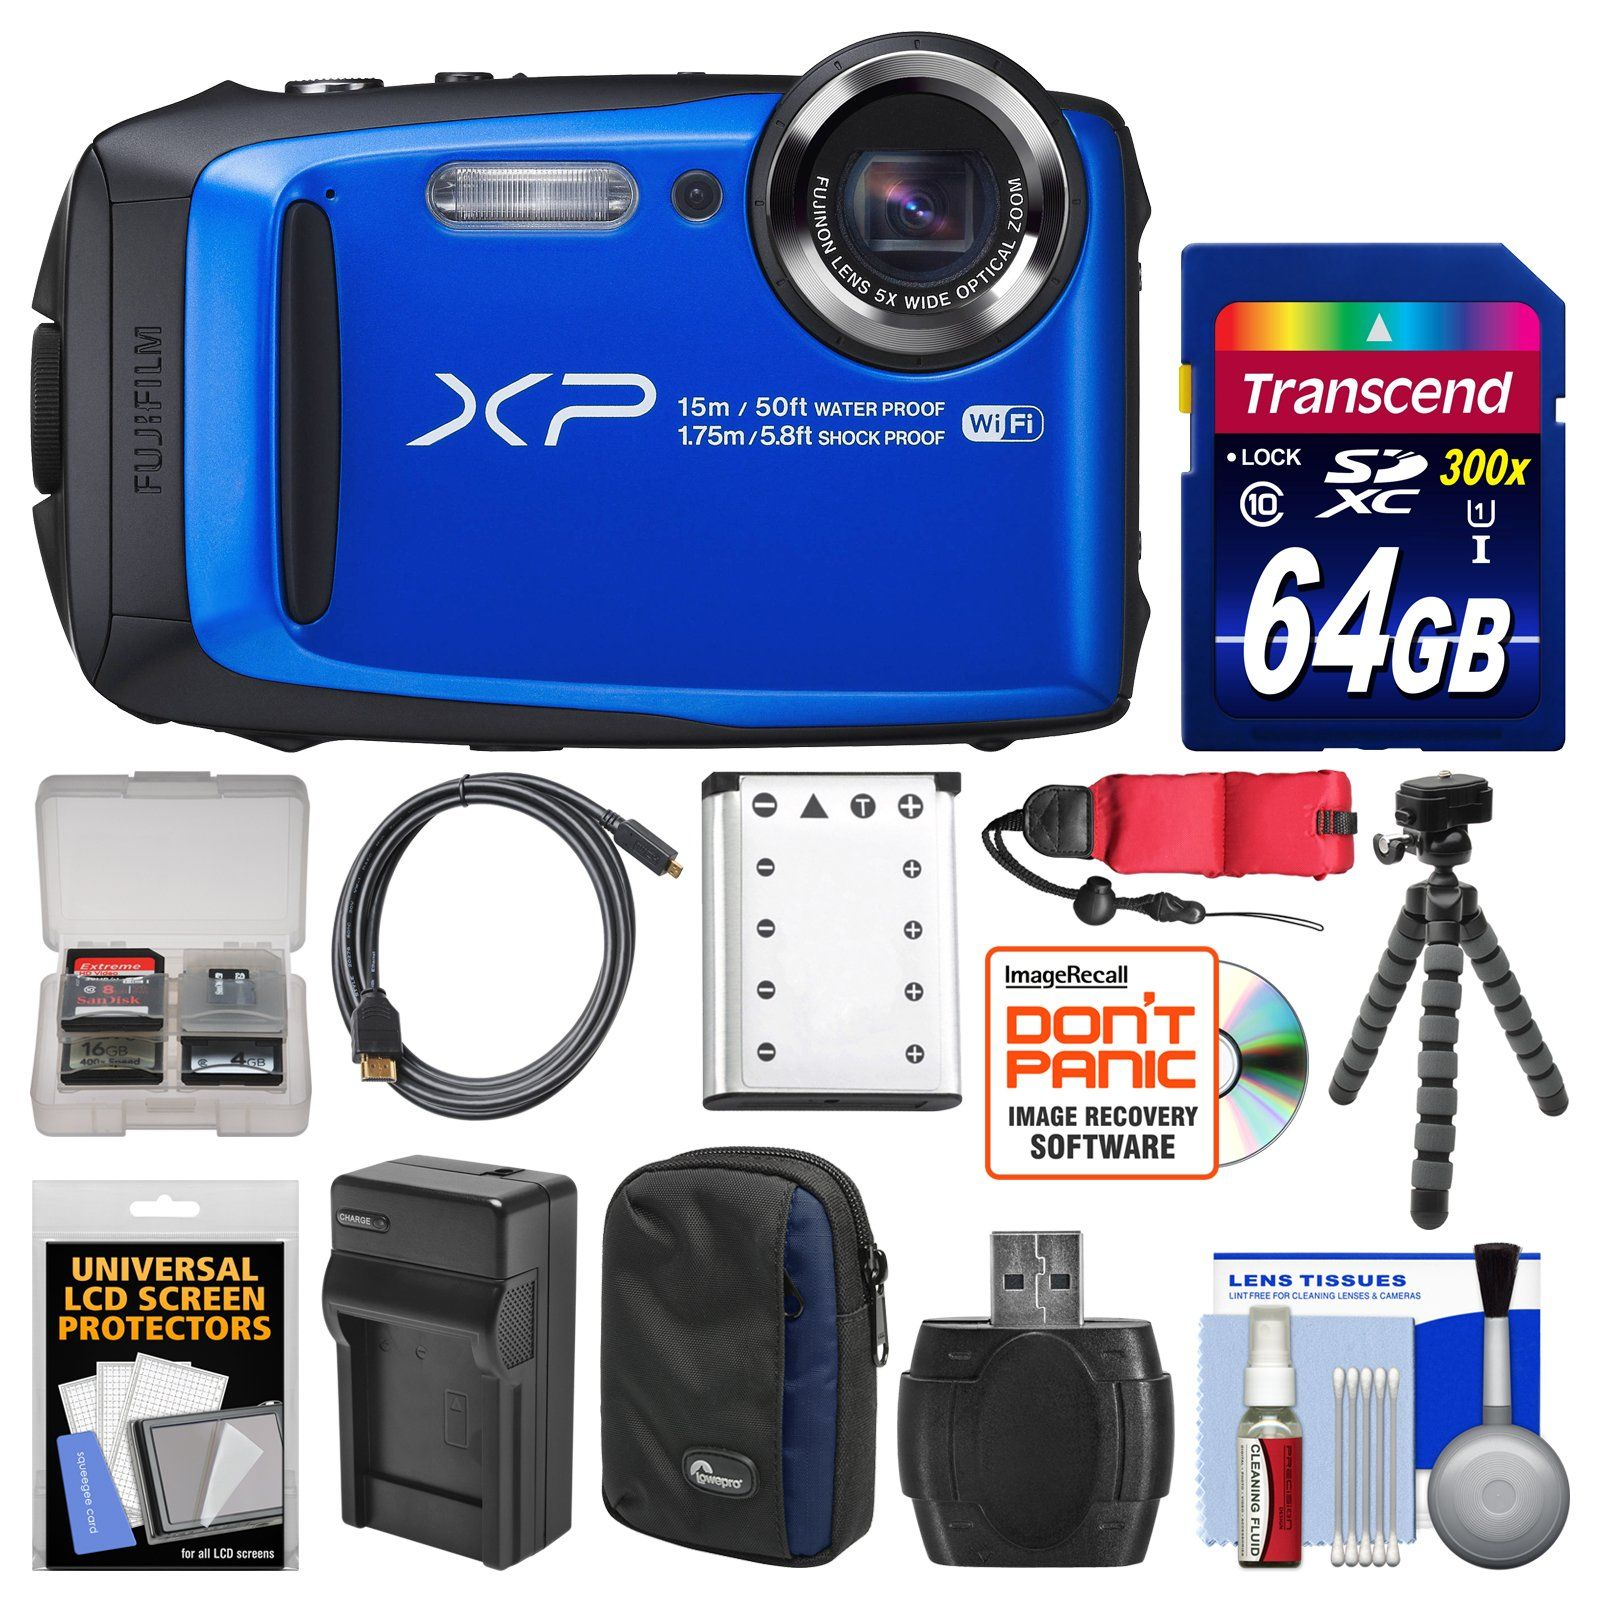 Fujifilm FinePix XP90 Shock & Waterproof Wi-Fi Digital Camera (Blue) with 64GB Card + Case + Battery & Charger + Flex Tripod + Strap + Kit. KIT INCLUDES 13 PRODUCTS -- All BRAND NEW Items with all Manufacturer-supplied Accessories + Full USA Warranties:. [1] Fujifilm FinePix XP90 Shock & Waterproof Wi-Fi Digital Camera (Blue) + [2] Transcend 64GB SDXC 300x Card + [3] Spare Rechargeable Battery +. [4] Battery Charger + [5] Lowepro Newport 10 Camera Case + [6] PD-T14 Flexible Camera Tripod…